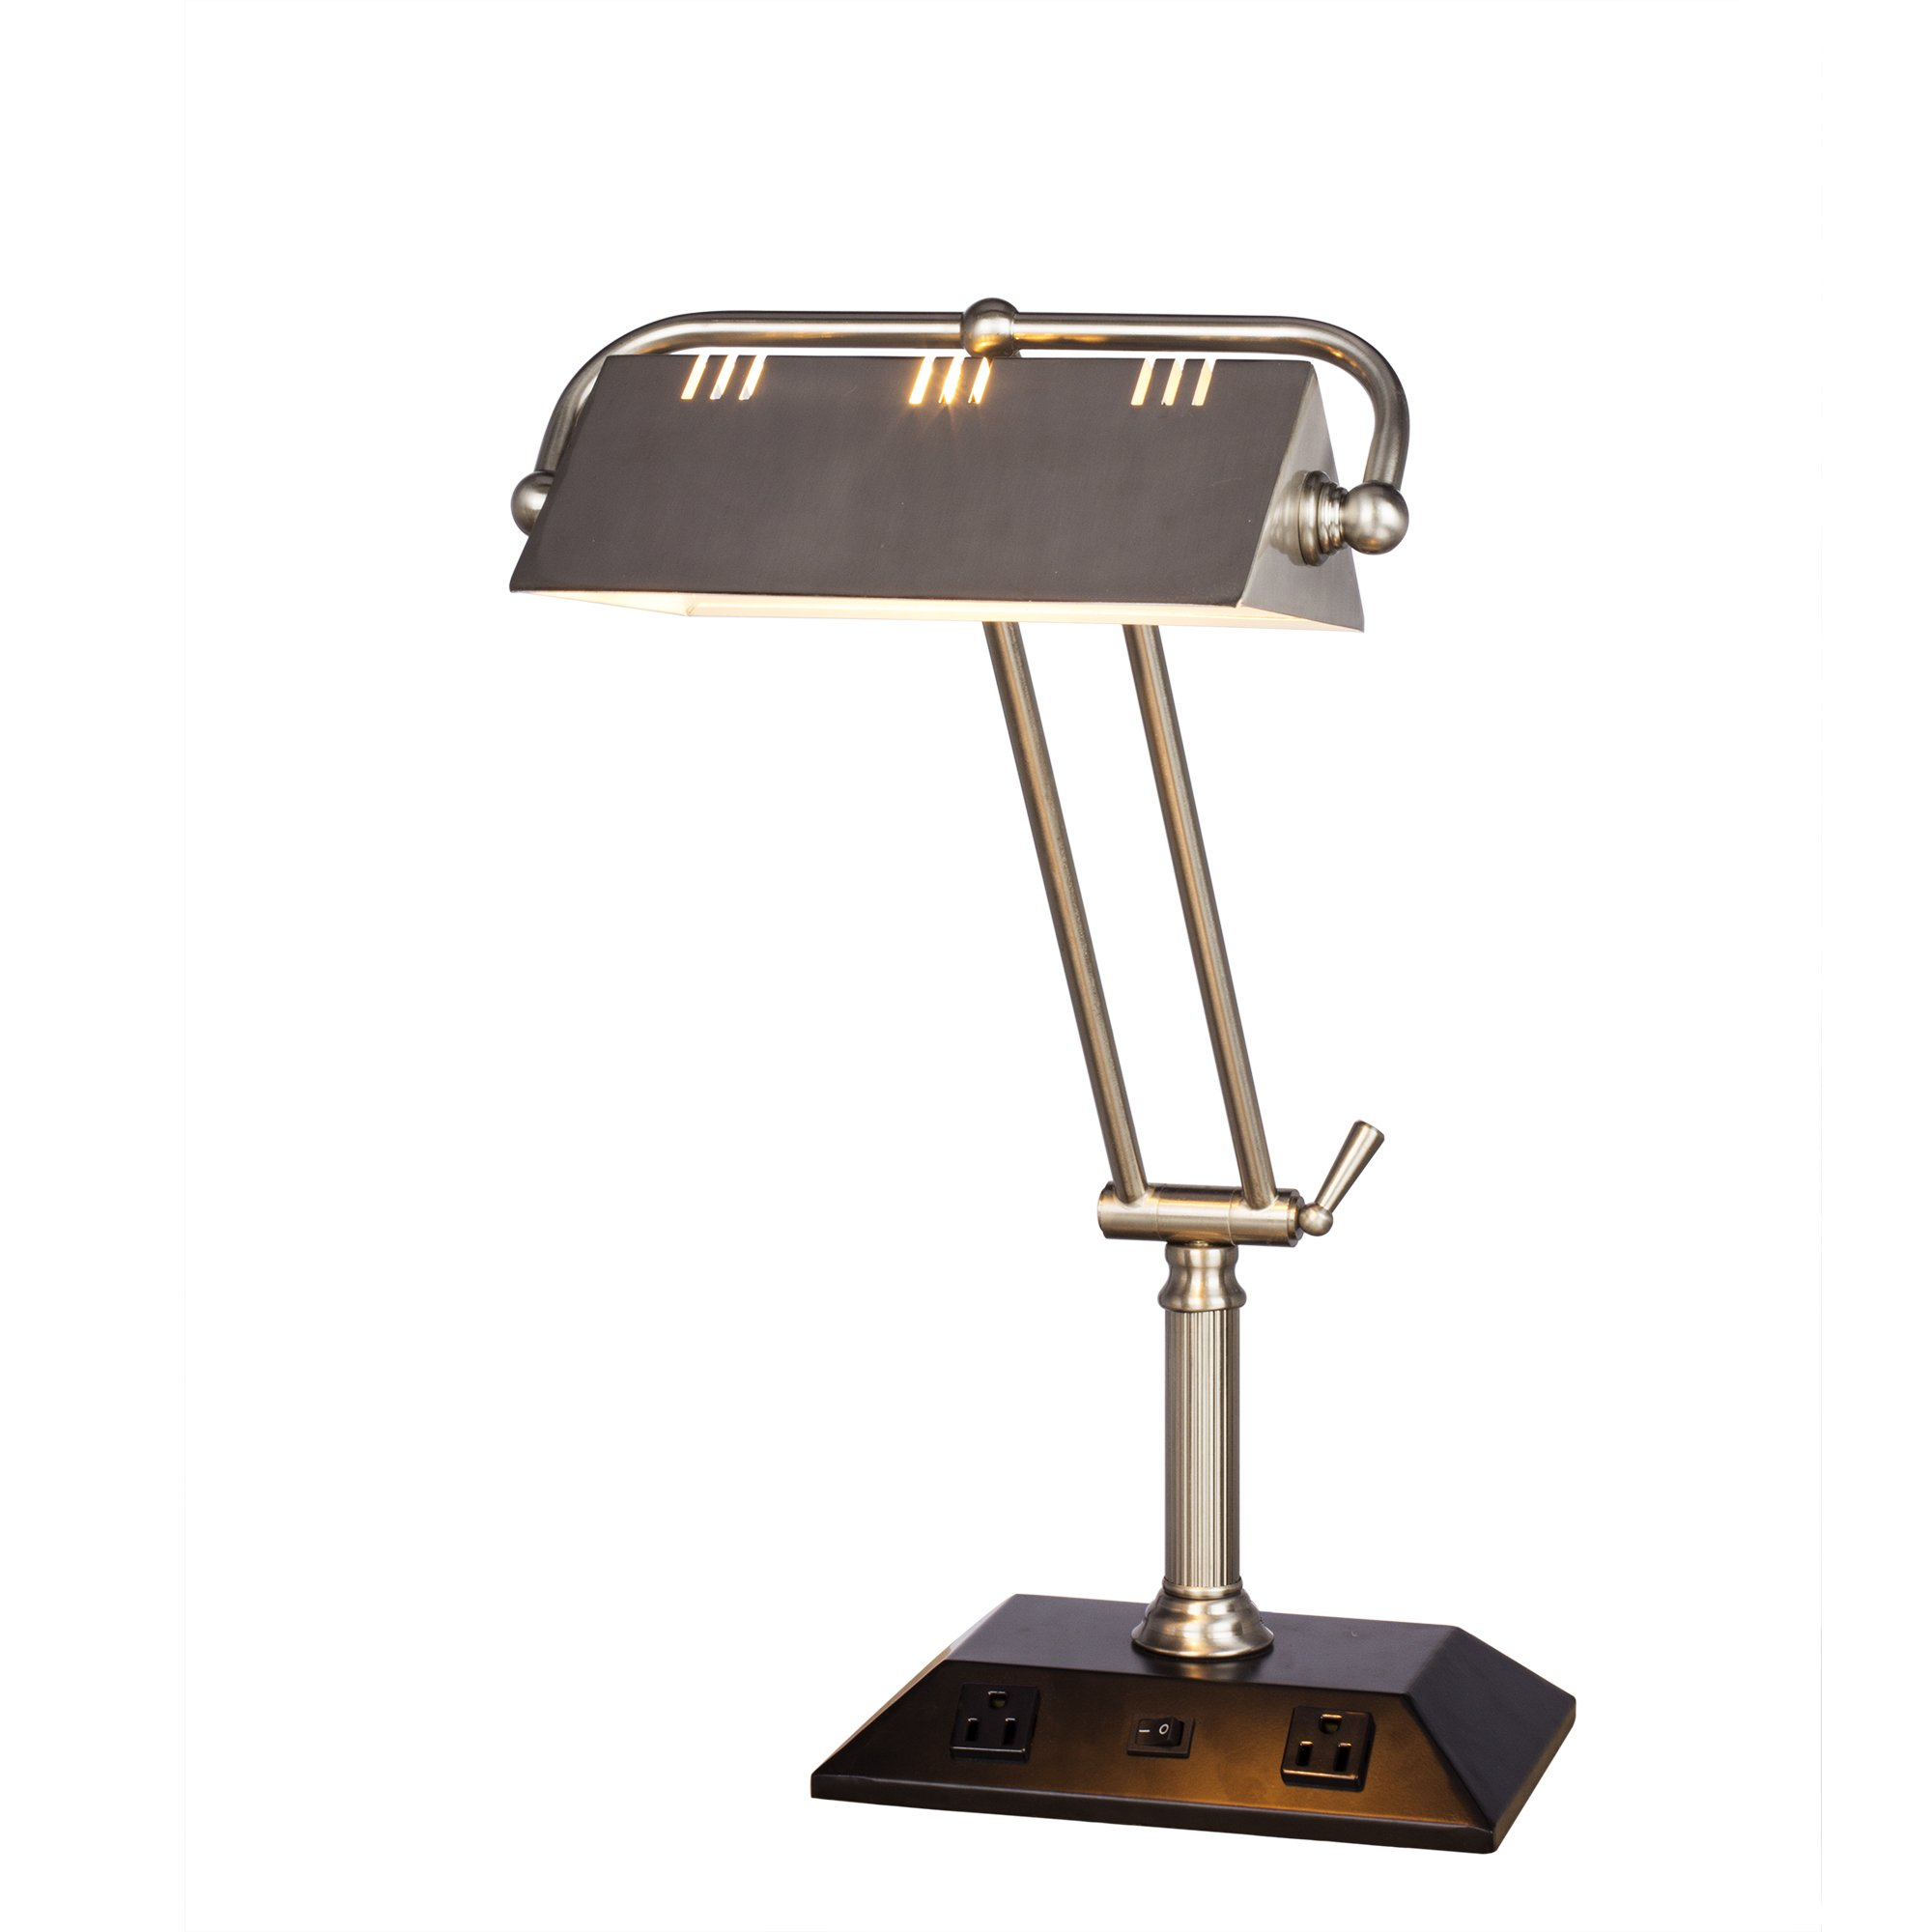 Fangio Lighting W-1122 BS #1122 BS 24 inch Adjustable Brushed Steel Tech Table Lampwith2 Base Outlets,